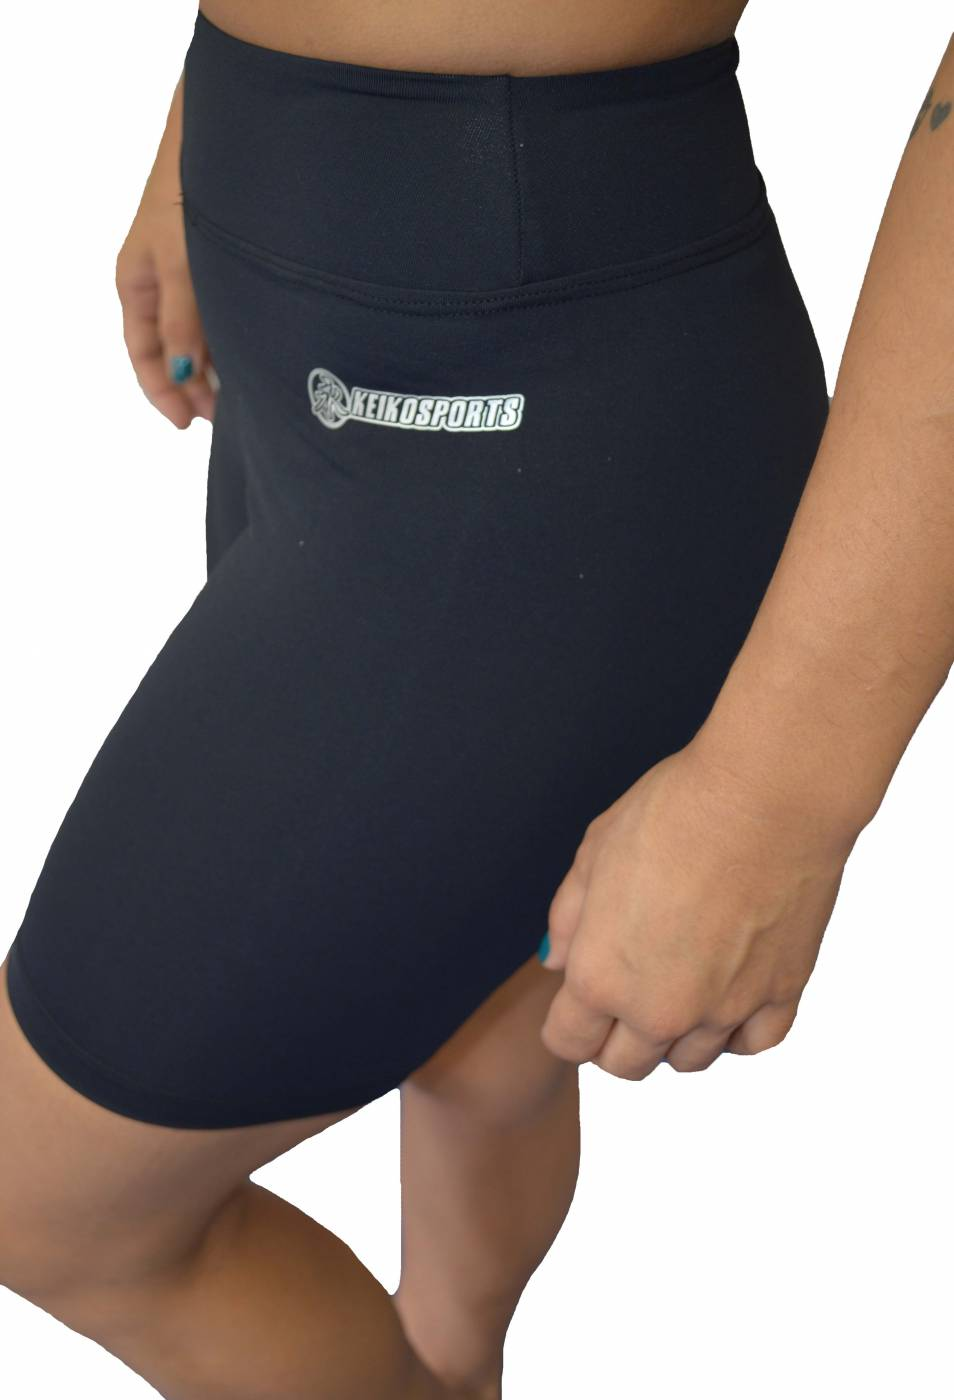 Womens Skin Shorts - Black